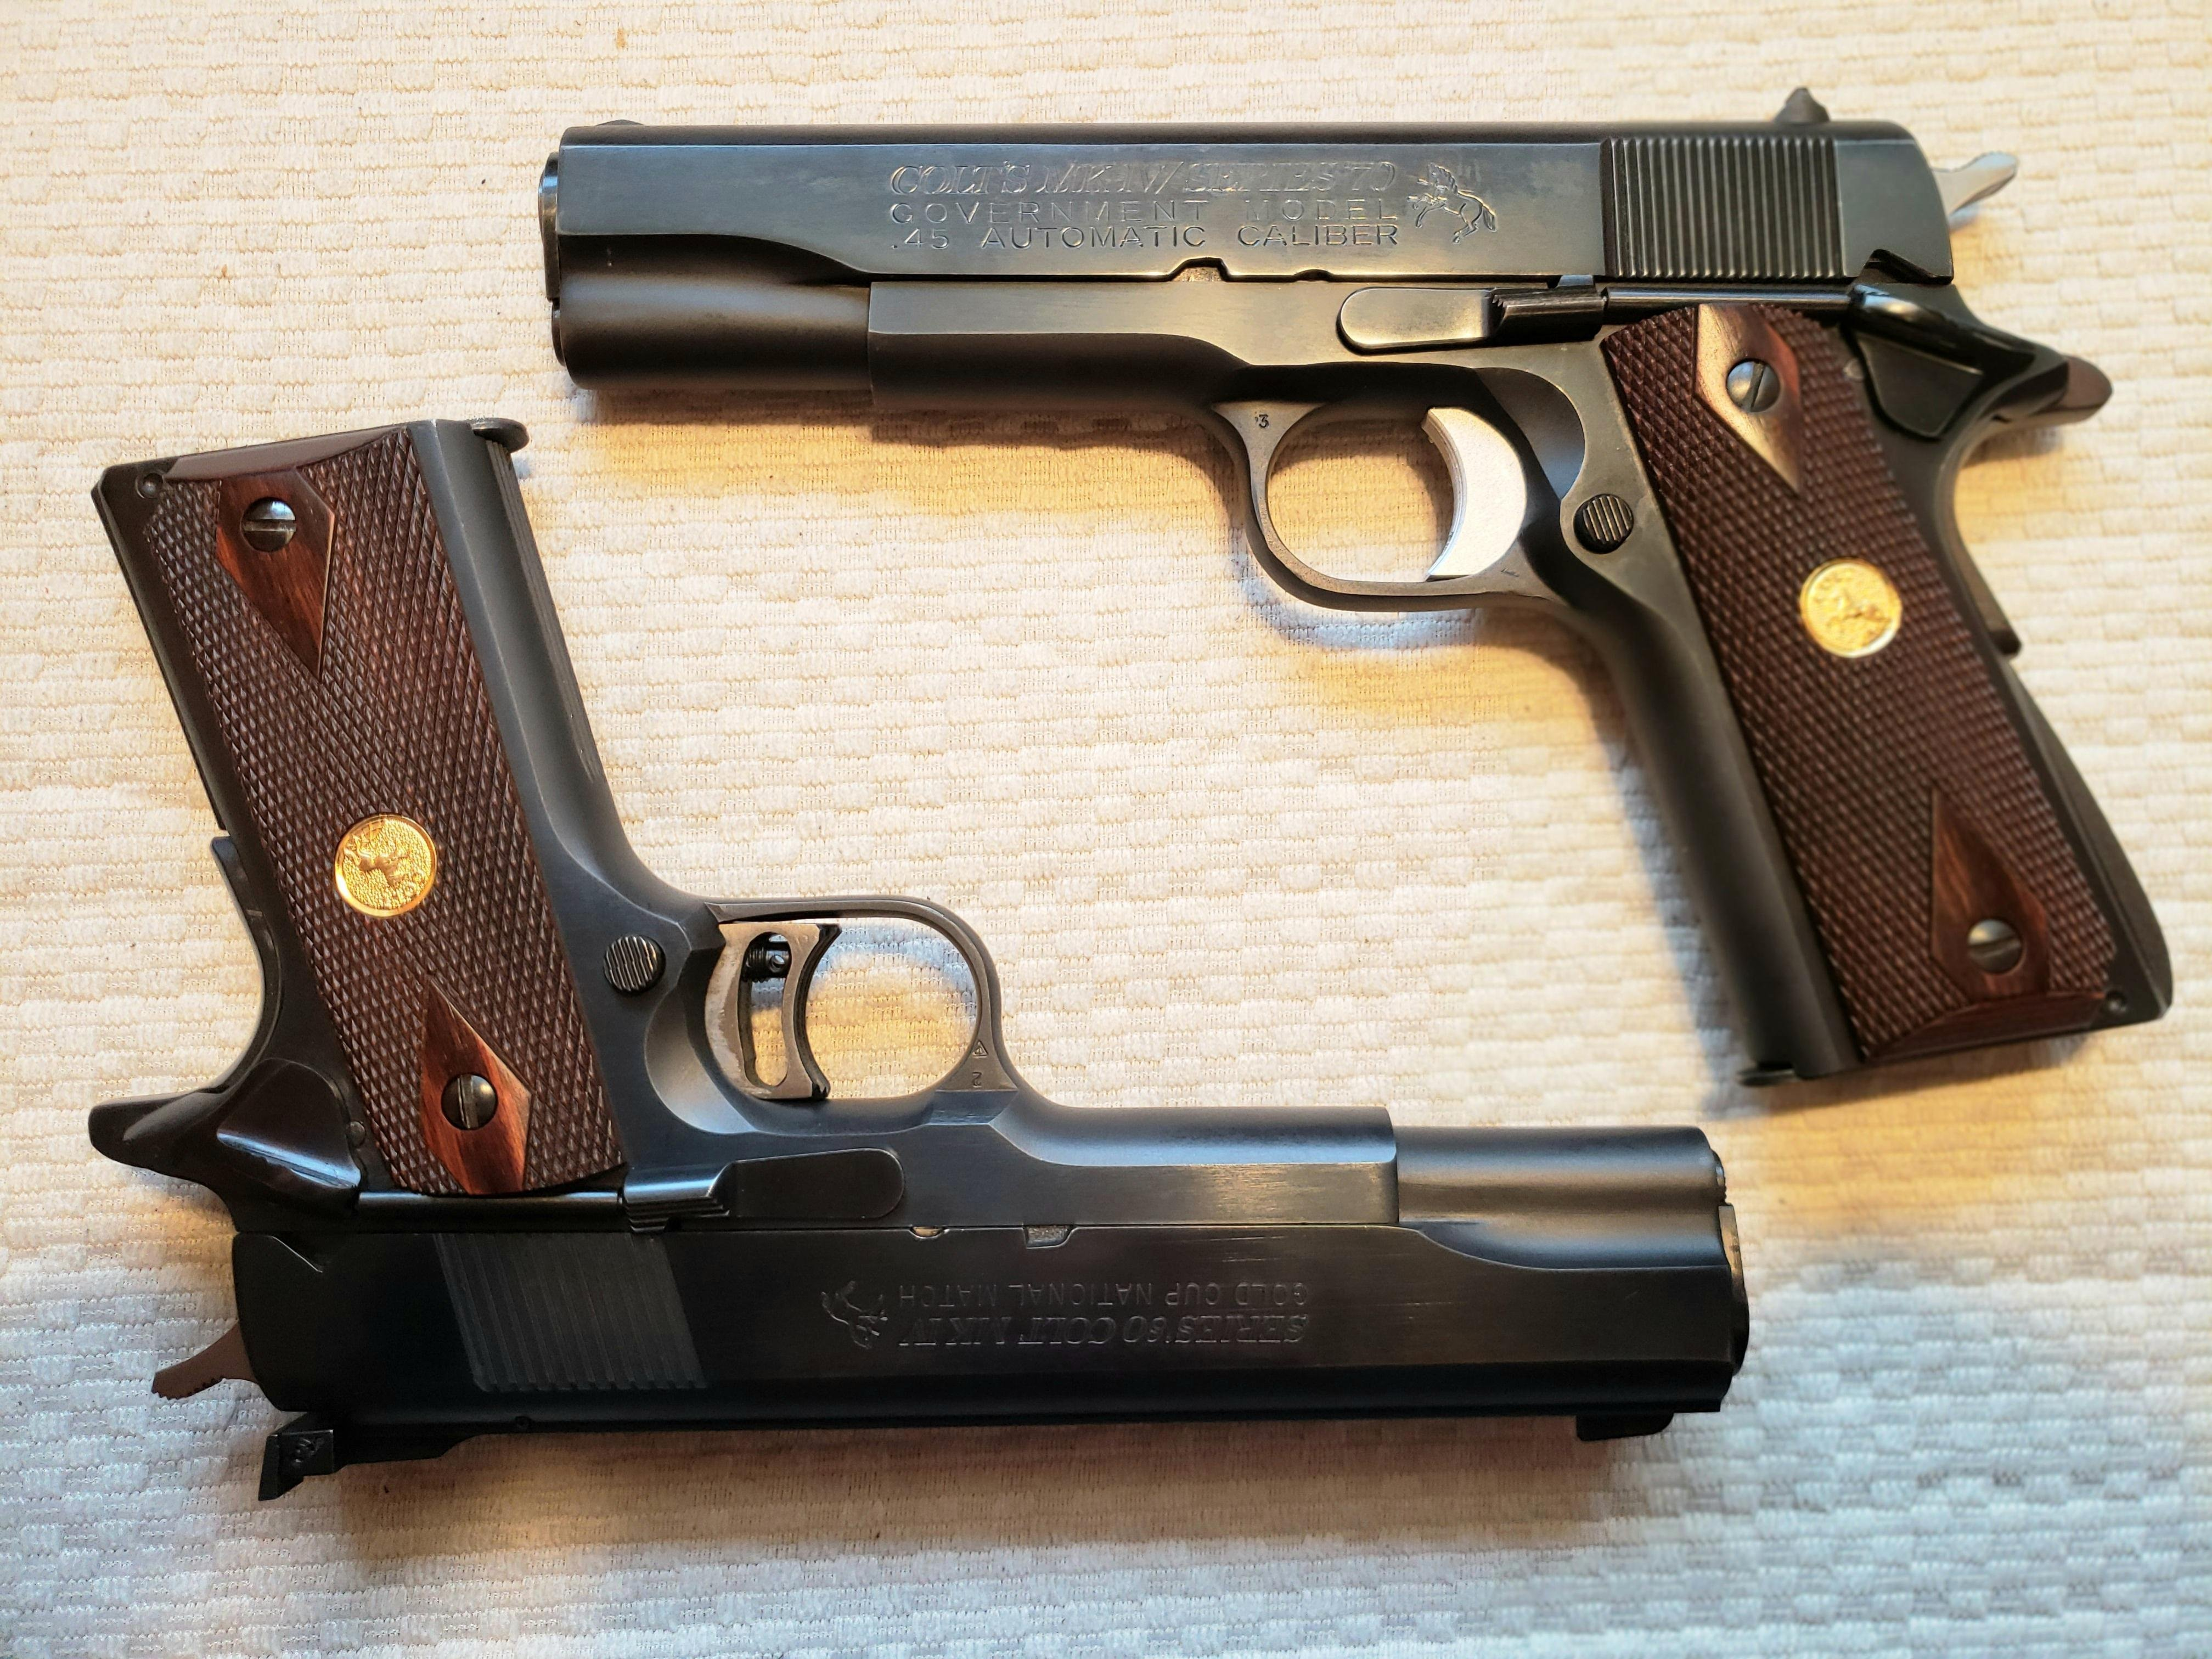 Click image for larger version  Name:20190324_093415 Colt S 70 Colt Gold cup.jpg Views:16 Size:1.23 MB ID:568910